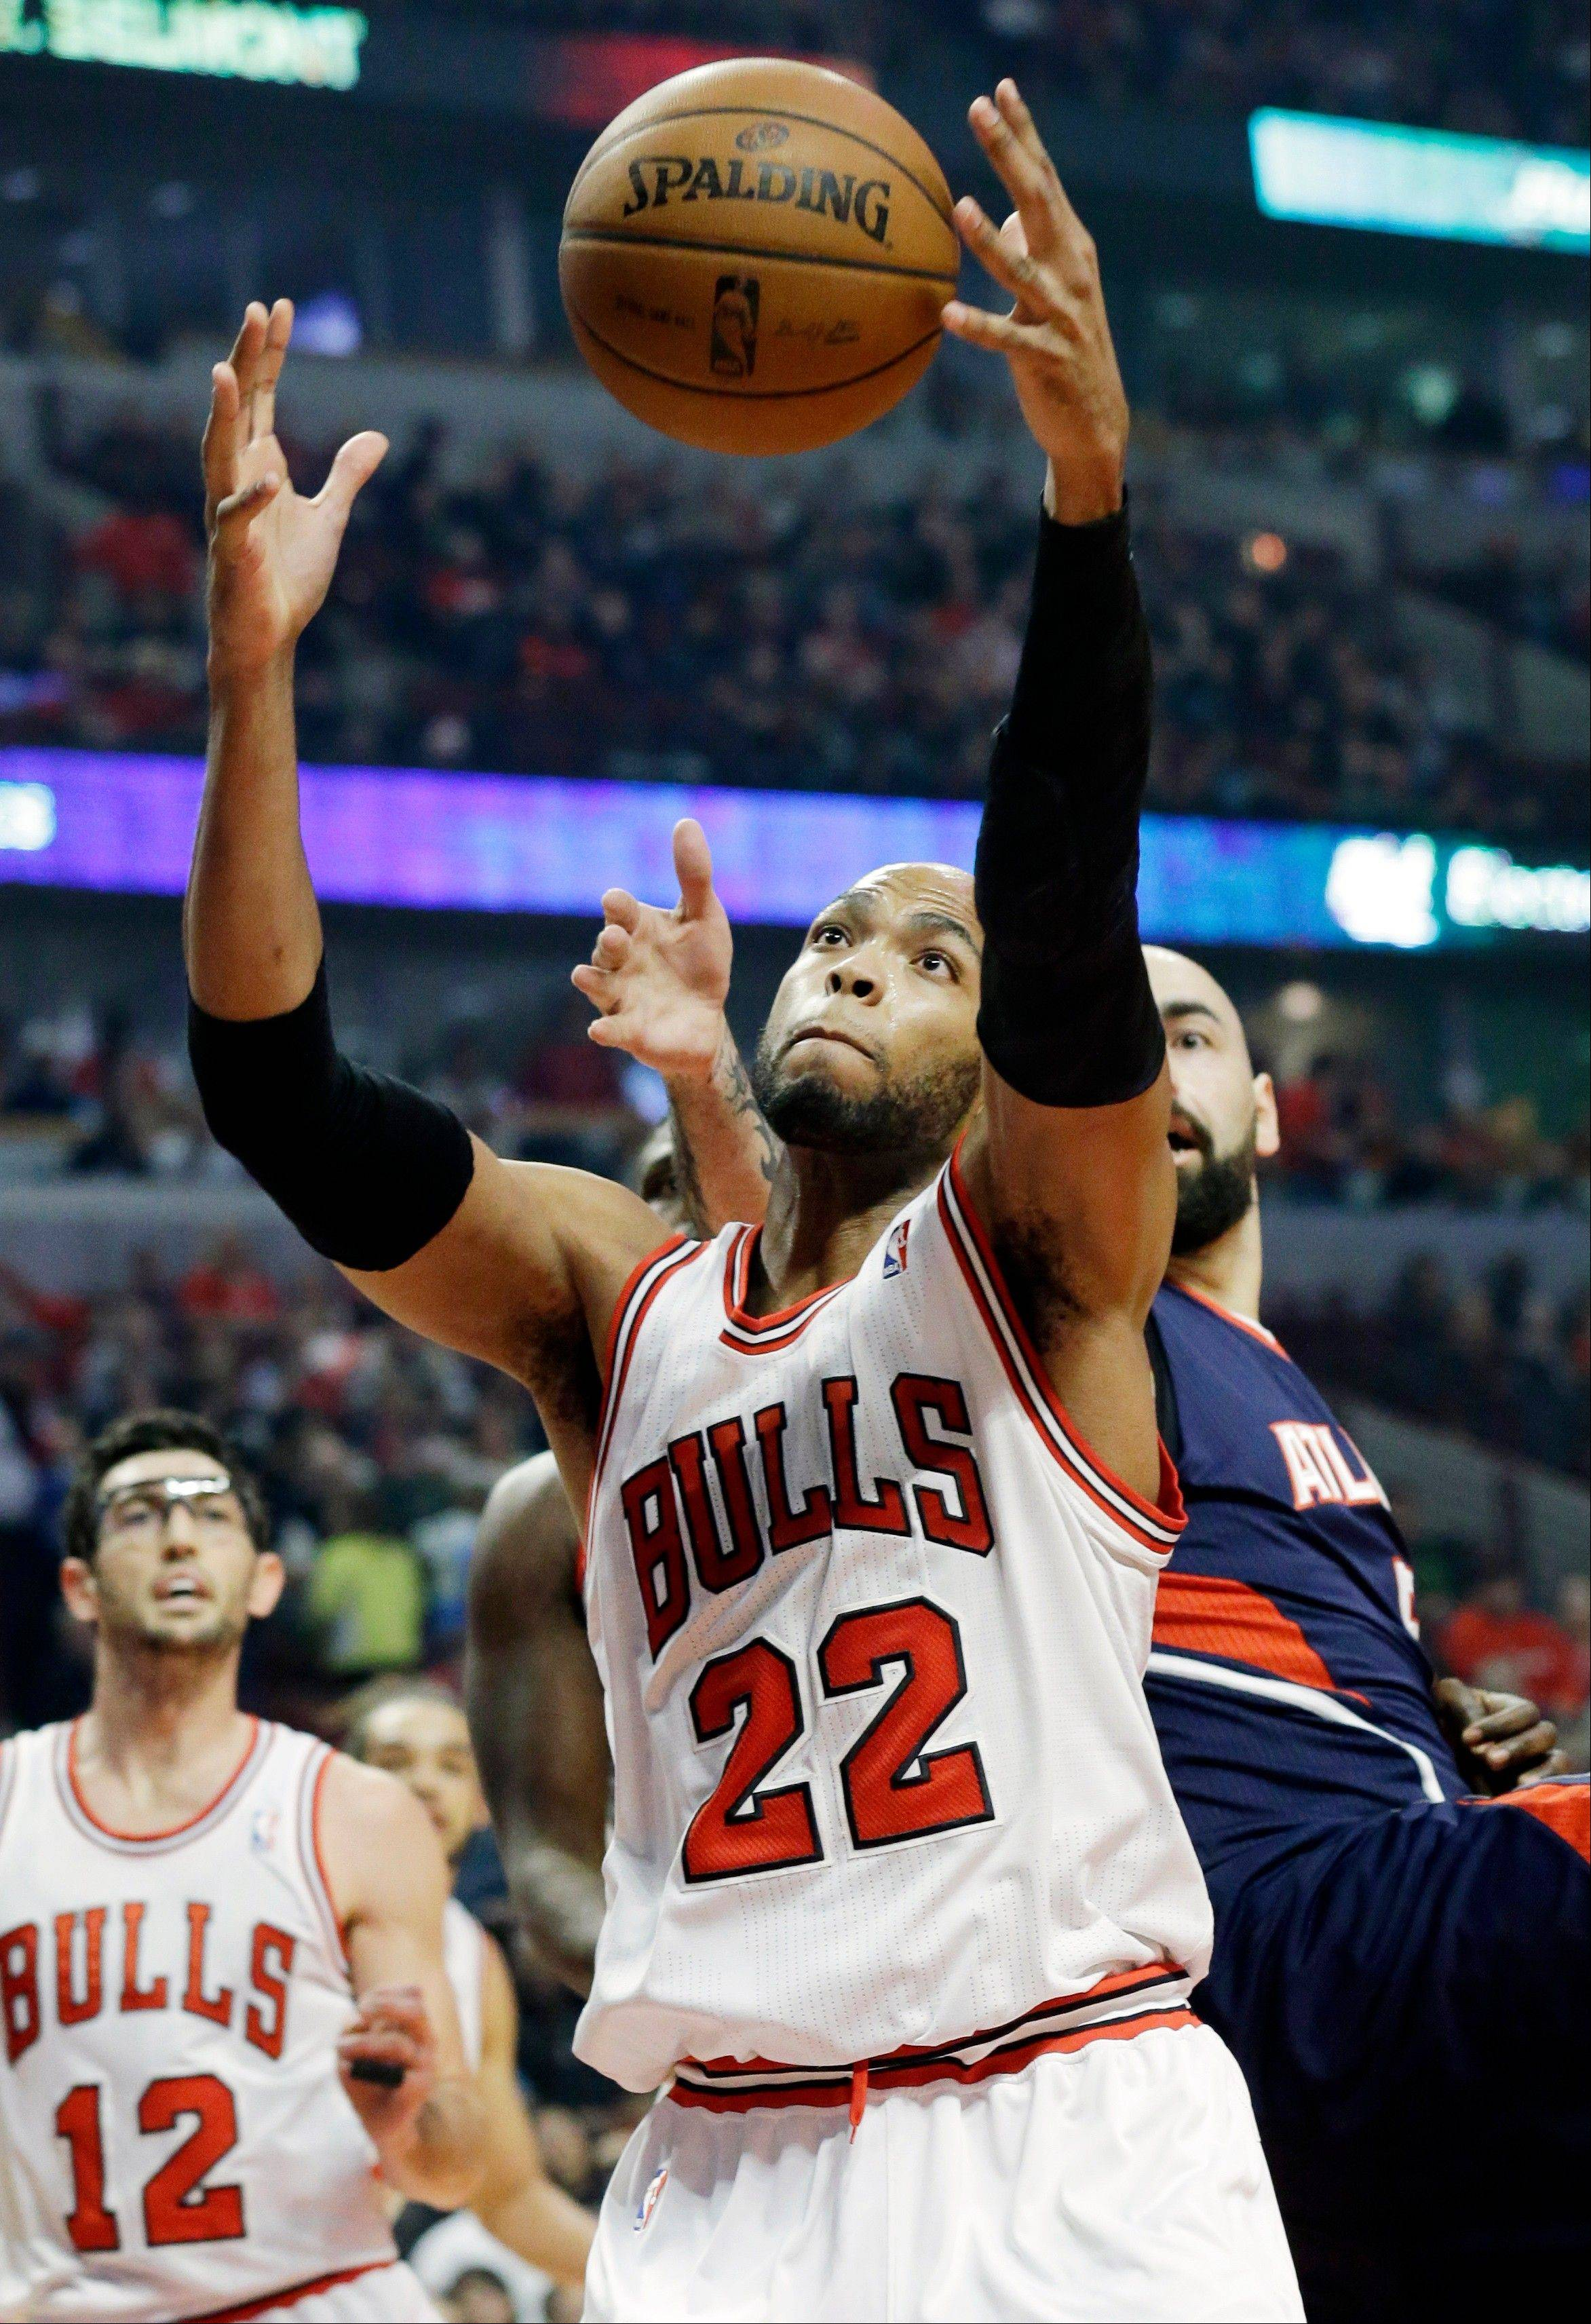 Bulls forward Taj Gibson (22) rebounds the ball against Atlanta Hawks center Pero Antic during the first half of an NBA basketball game in Chicago on Saturday, Jan. 4, 2014.